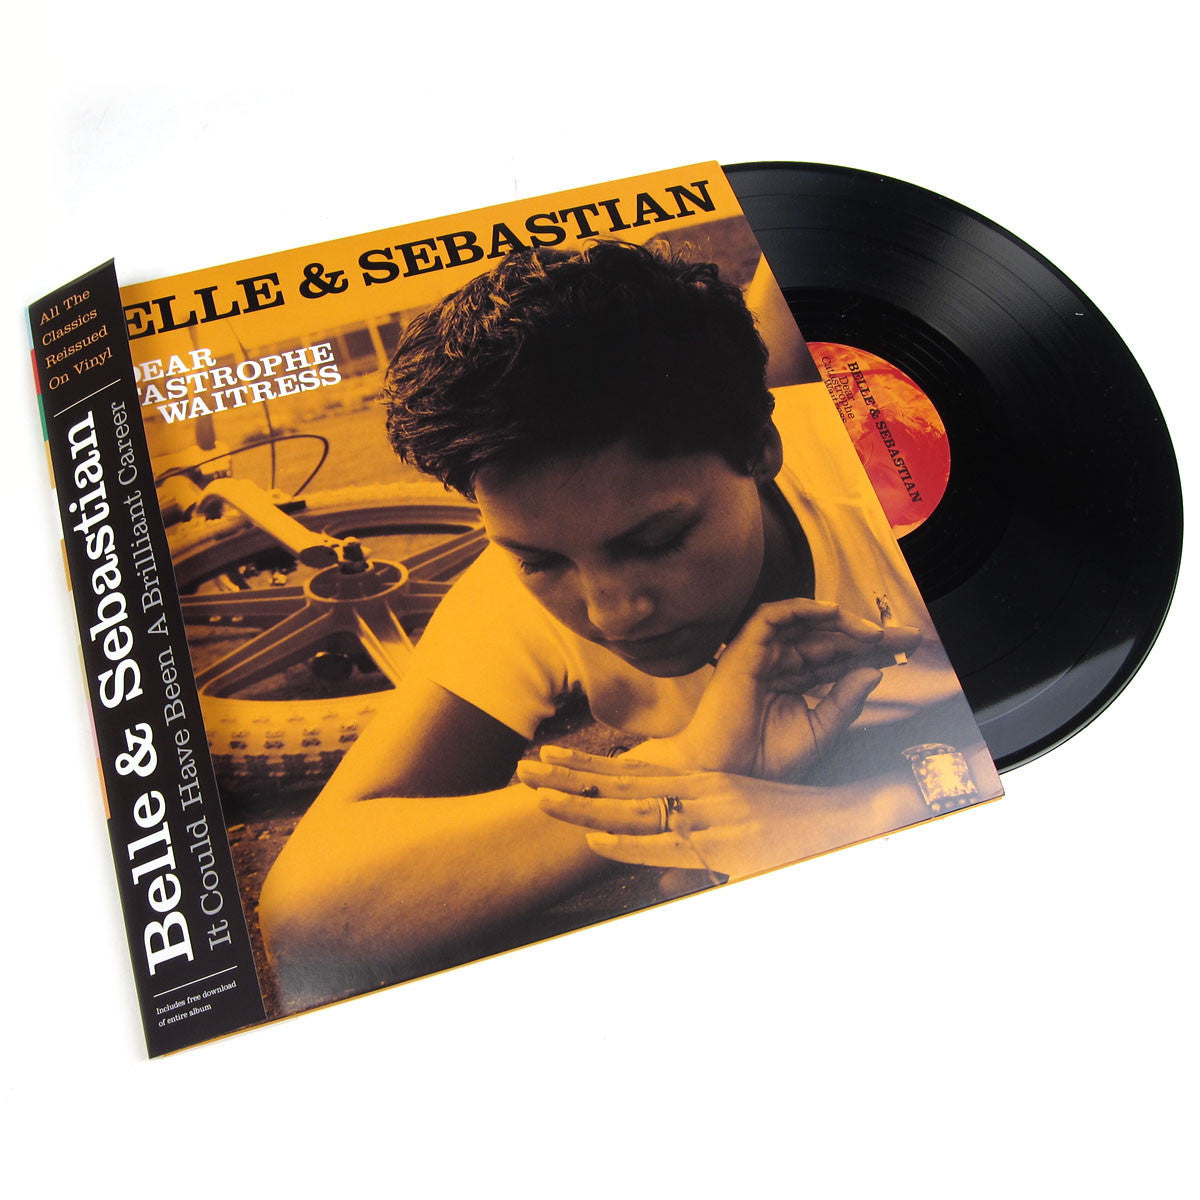 Belle & Sebastian: Dear Catastrophe Waitress (Free MP3) Vinyl 2LP